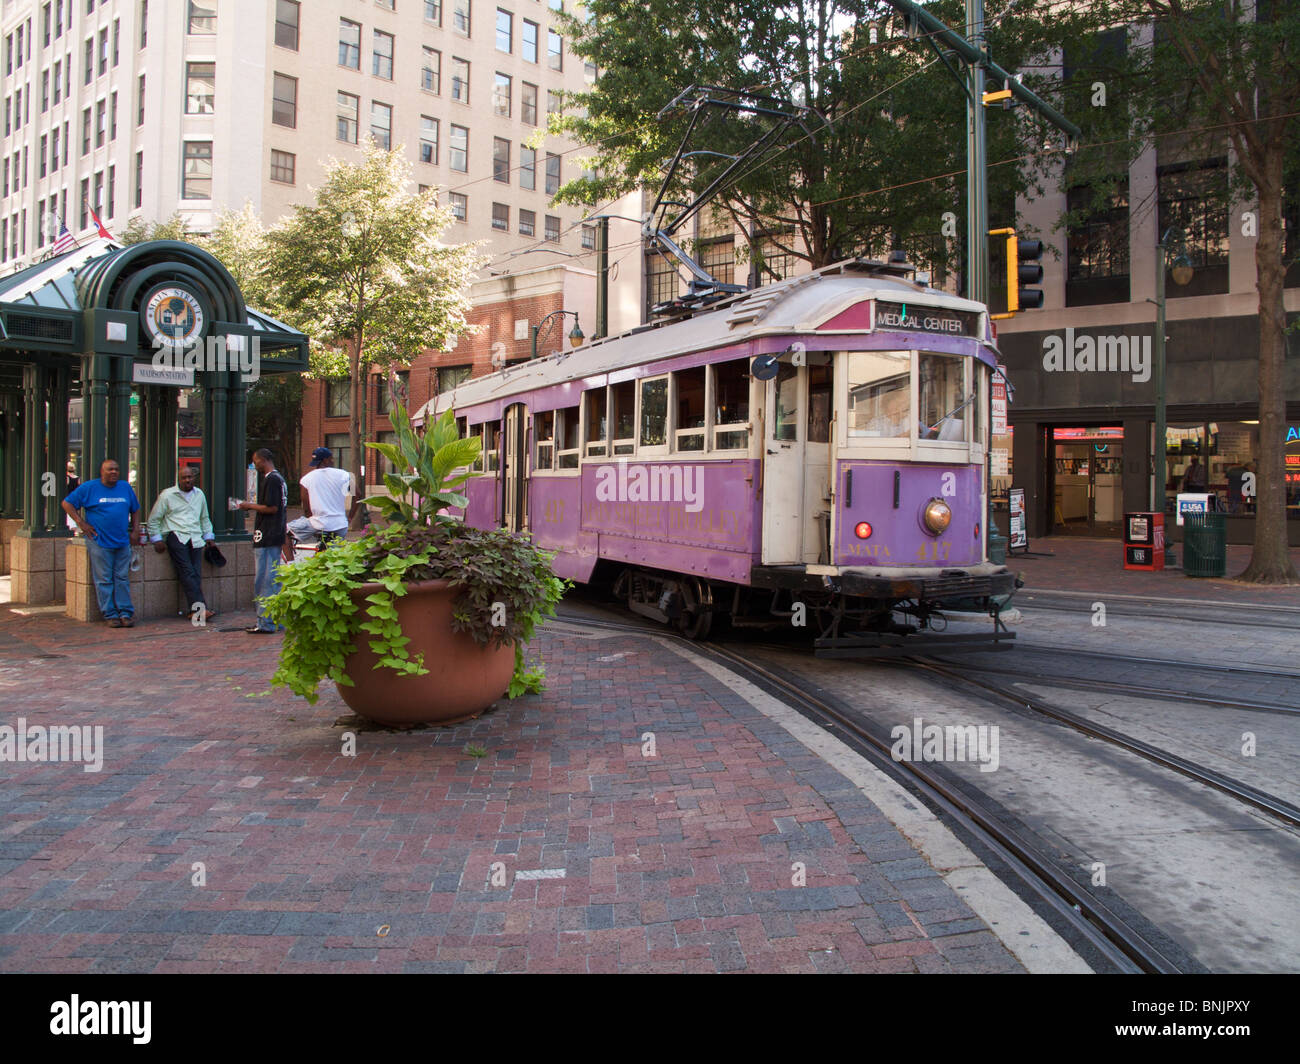 Trolley car on Main Street. Memphis, Tennessee. - Stock Image